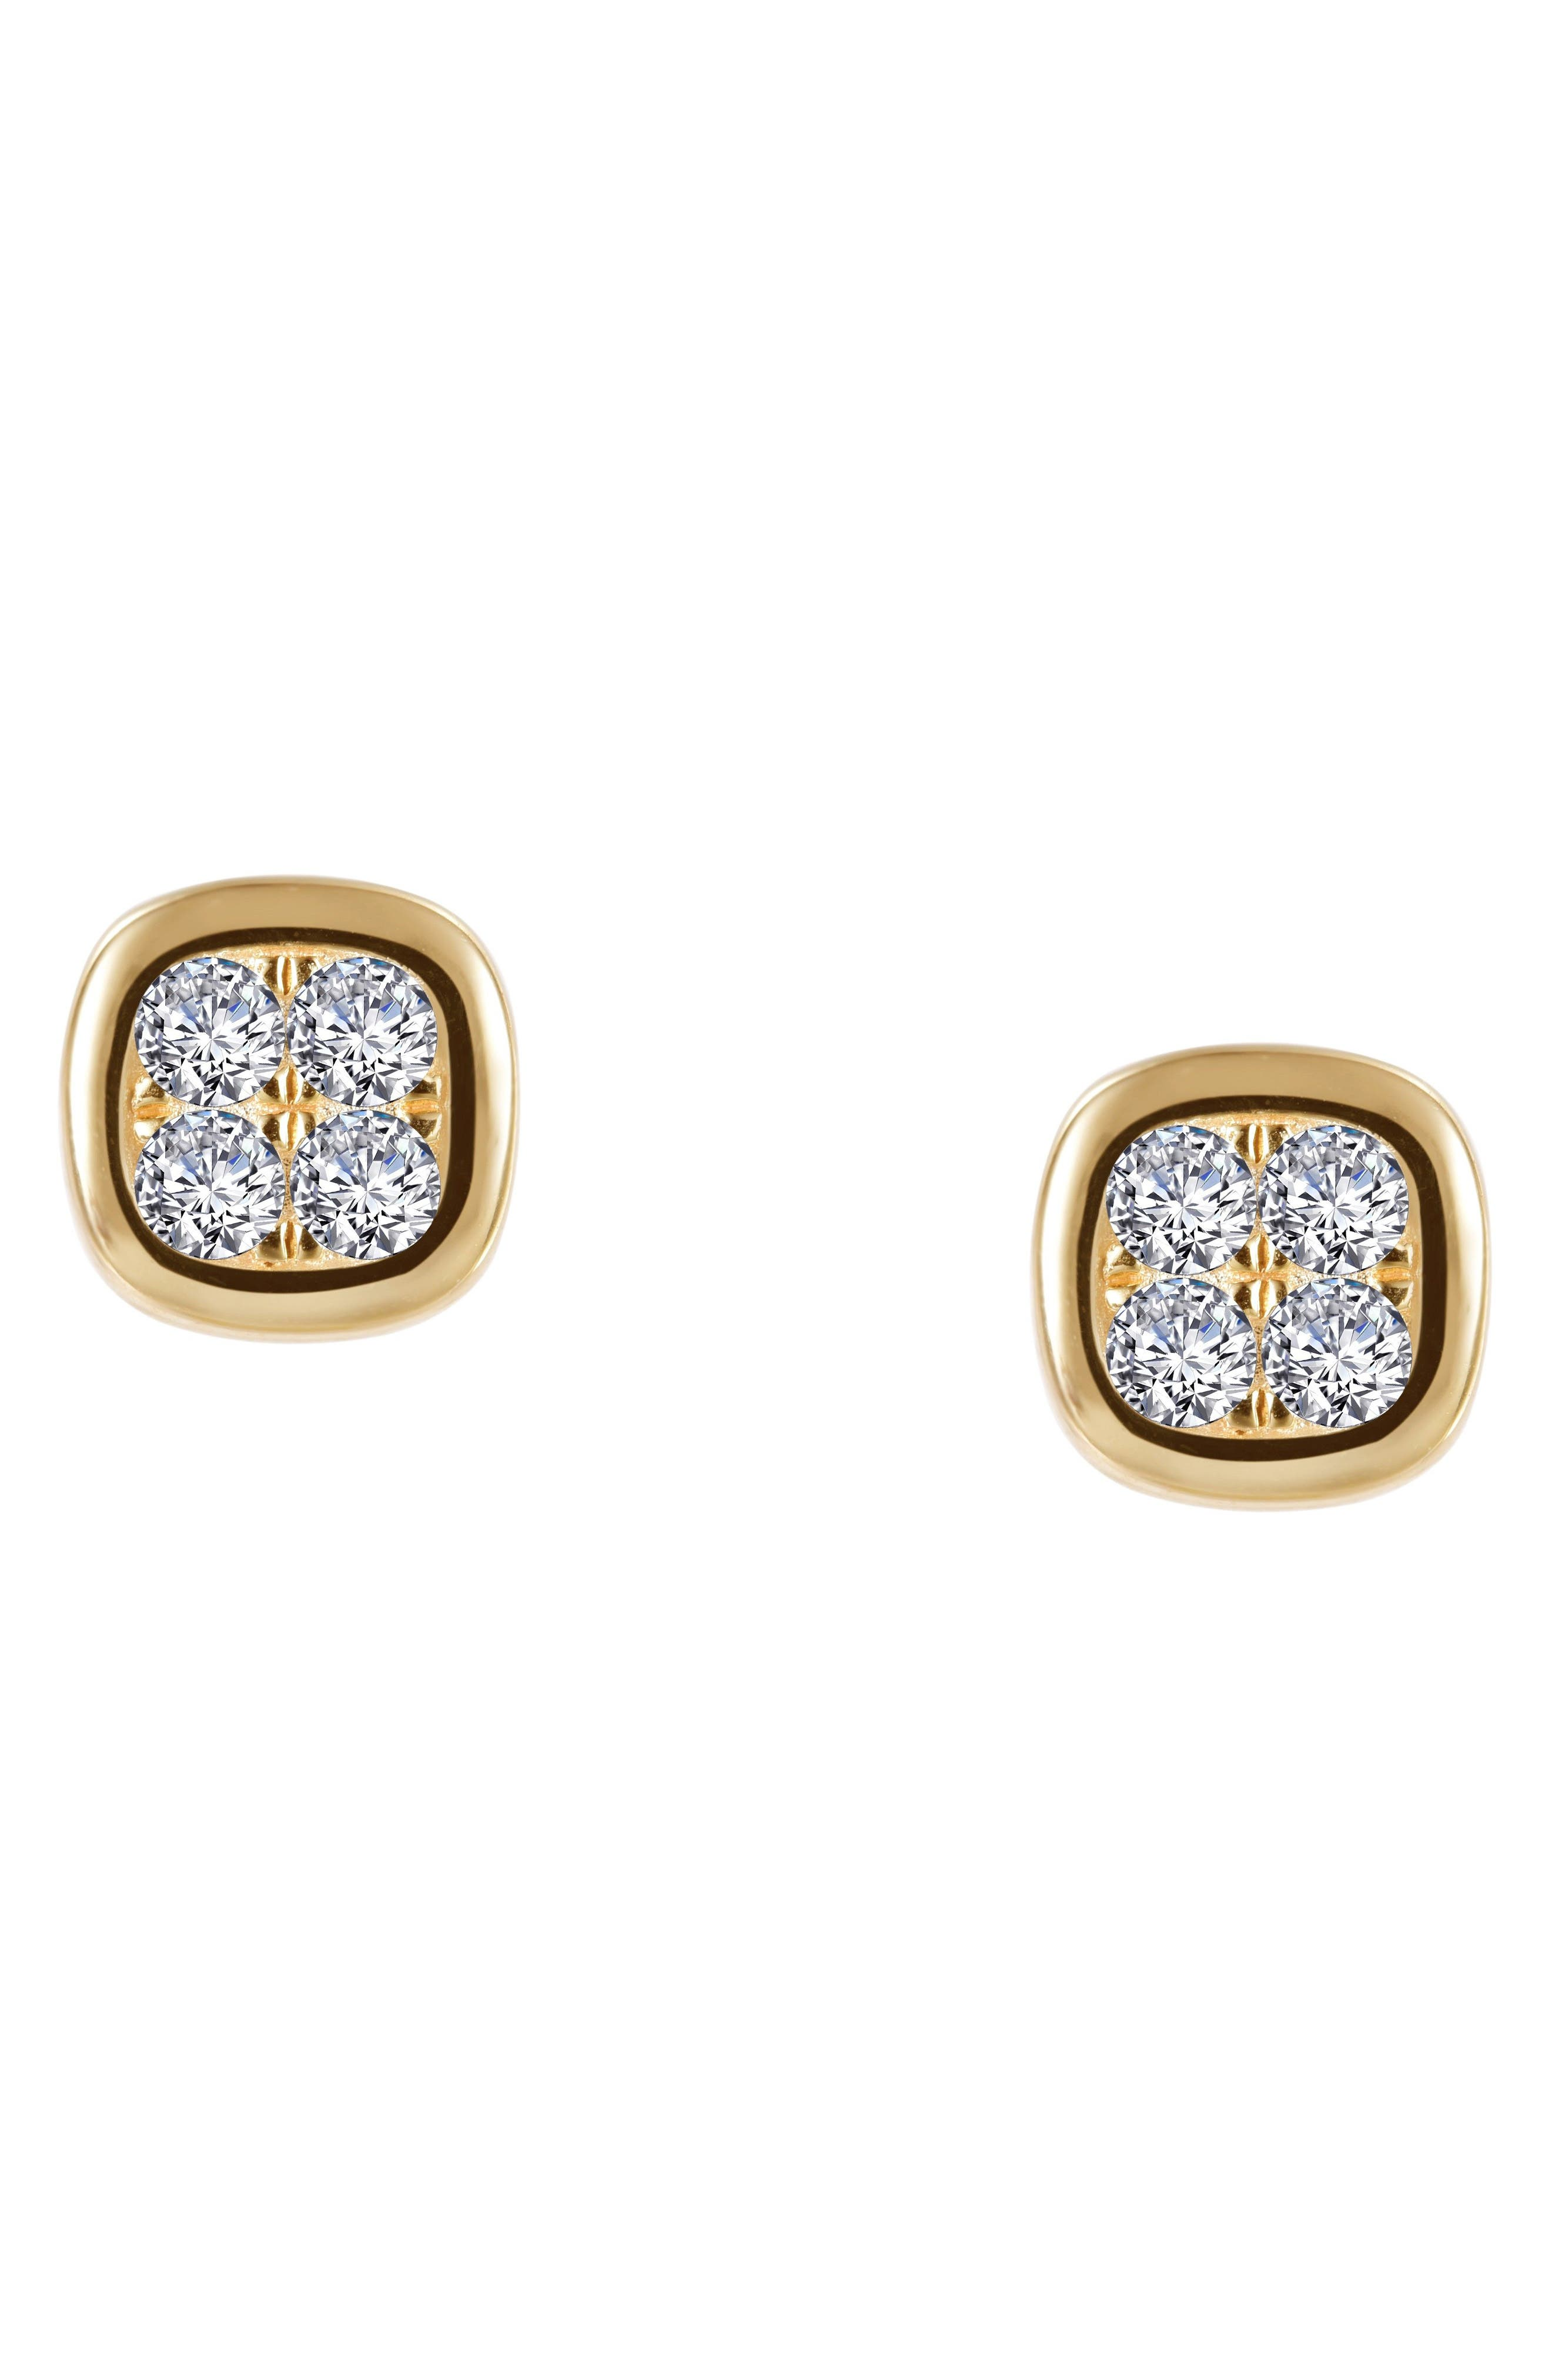 Bezel Stud Earrings,                         Main,                         color, Silver/ Gold/ Clear